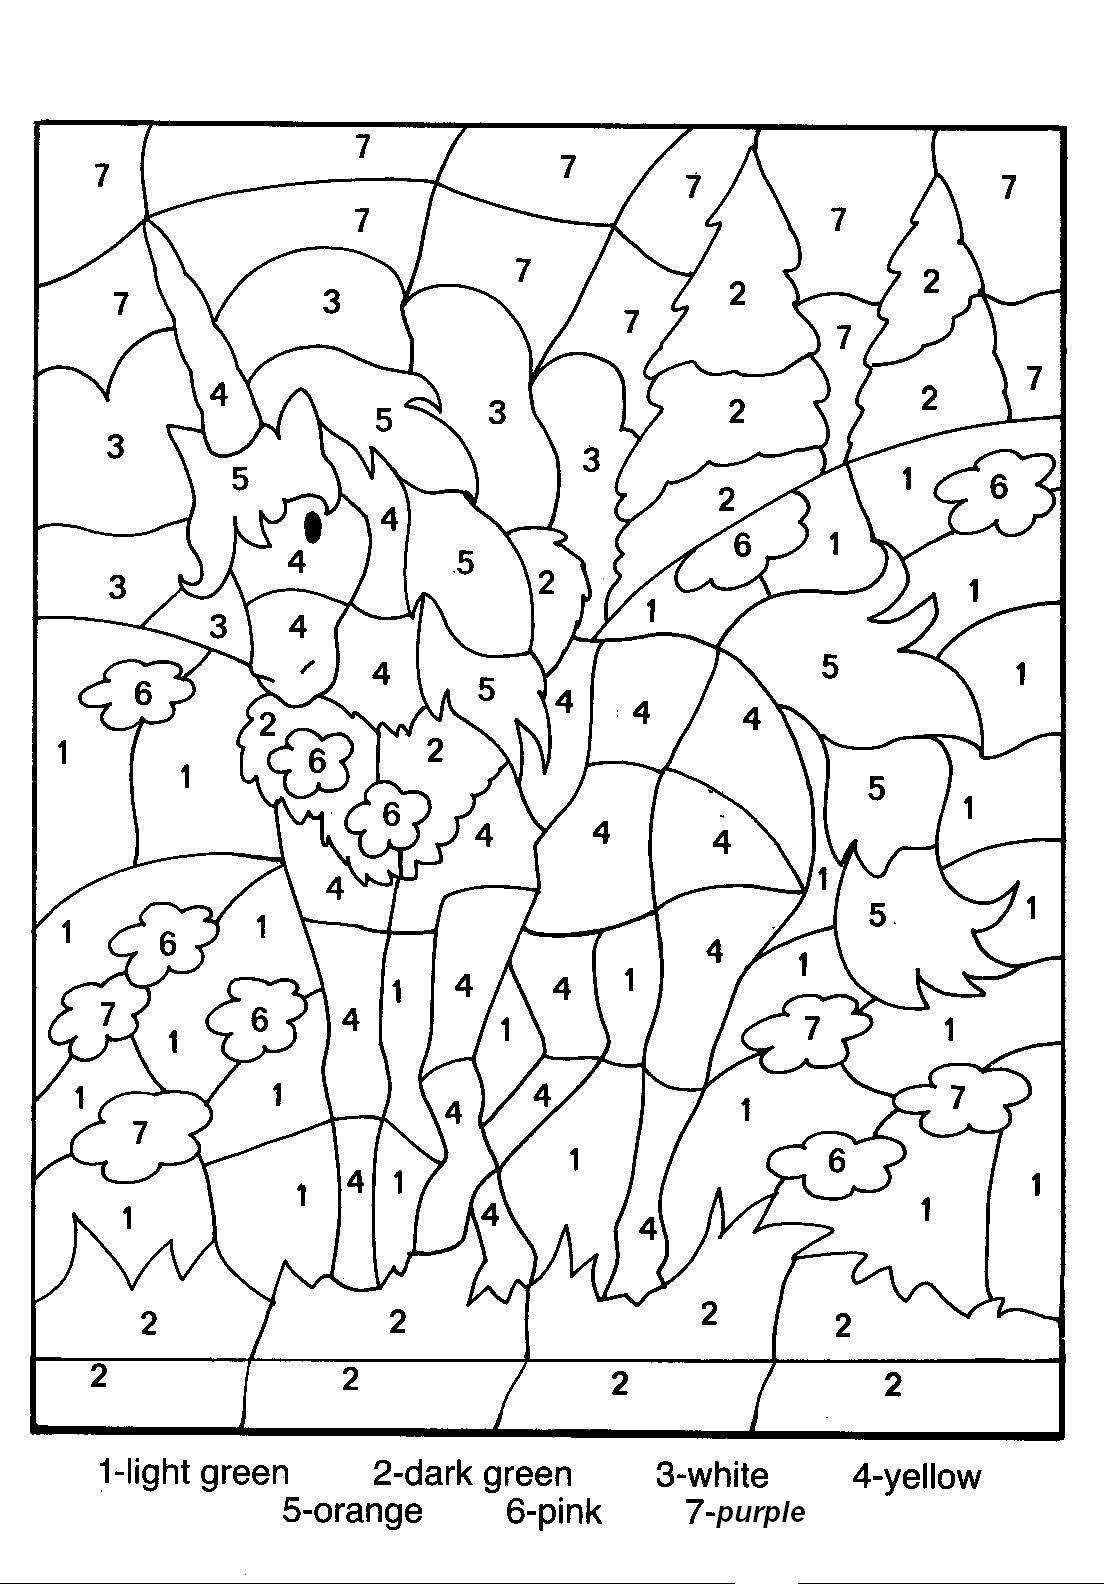 Free Printable Colornumber Coloring Pages   Colornumber - Free Printable Paint By Number Coloring Pages